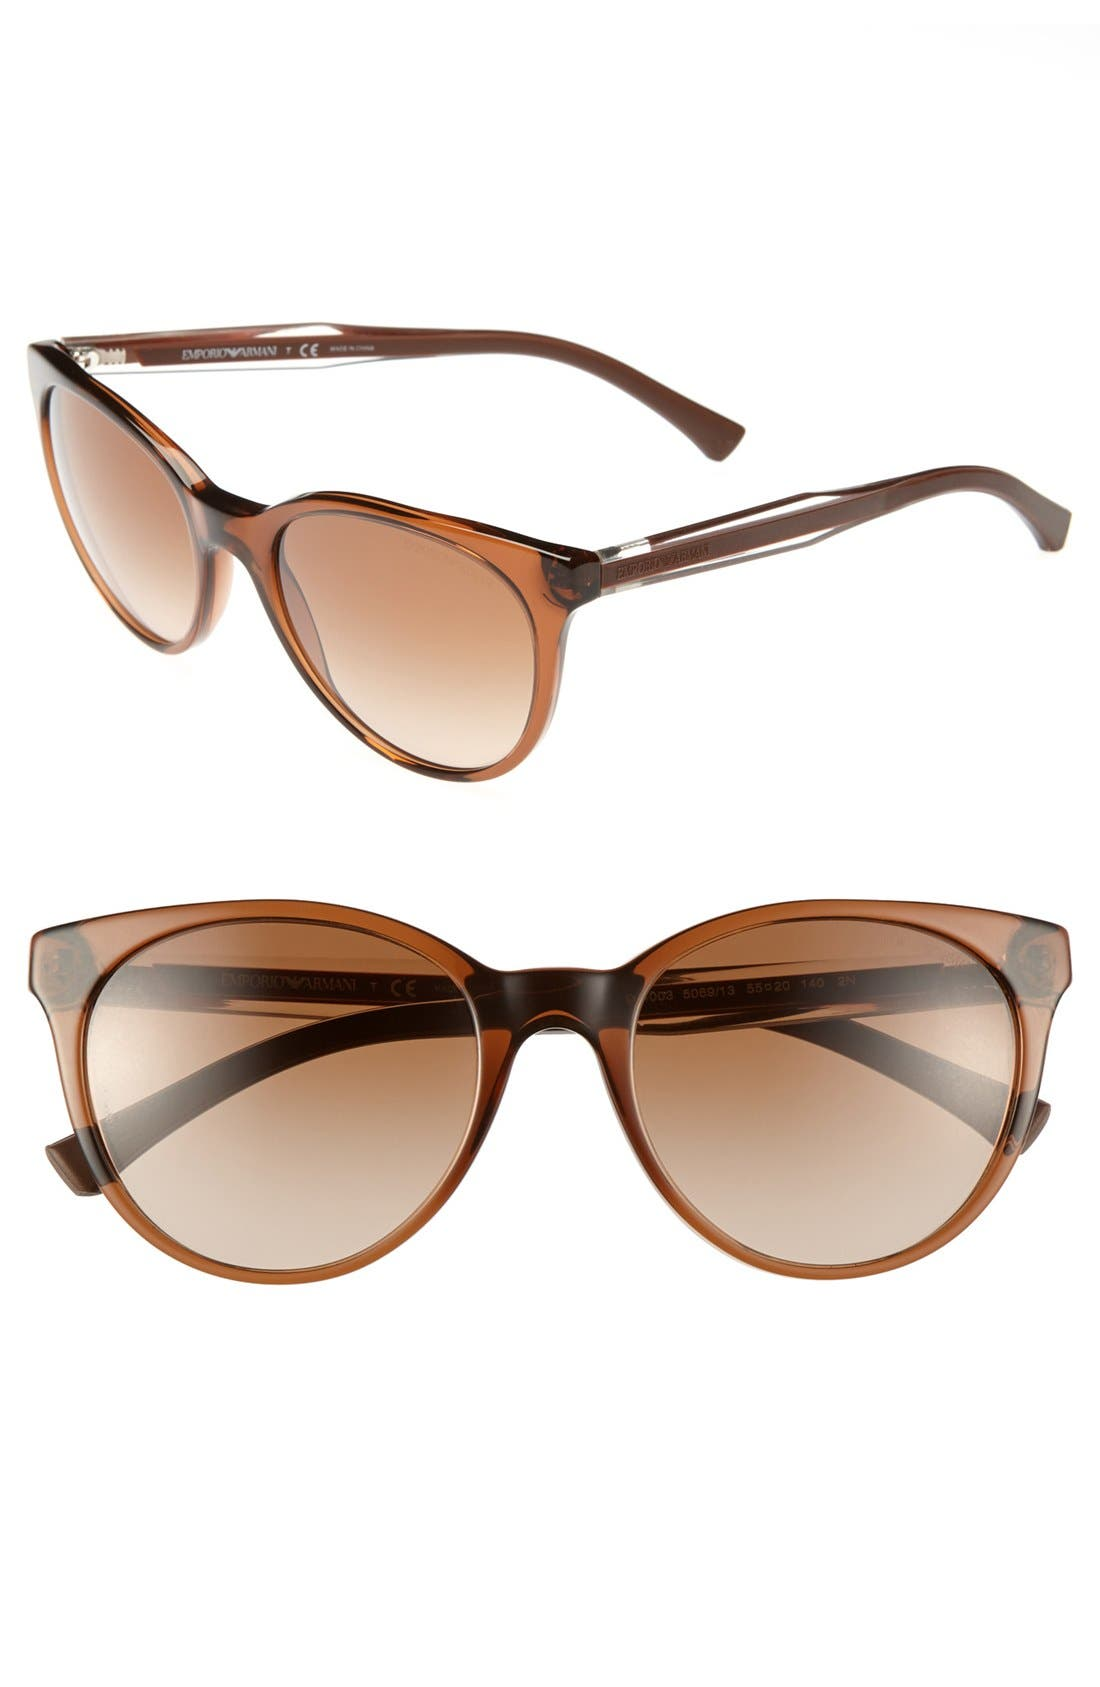 Main Image - Emporio Armani 55mm Sunglasses